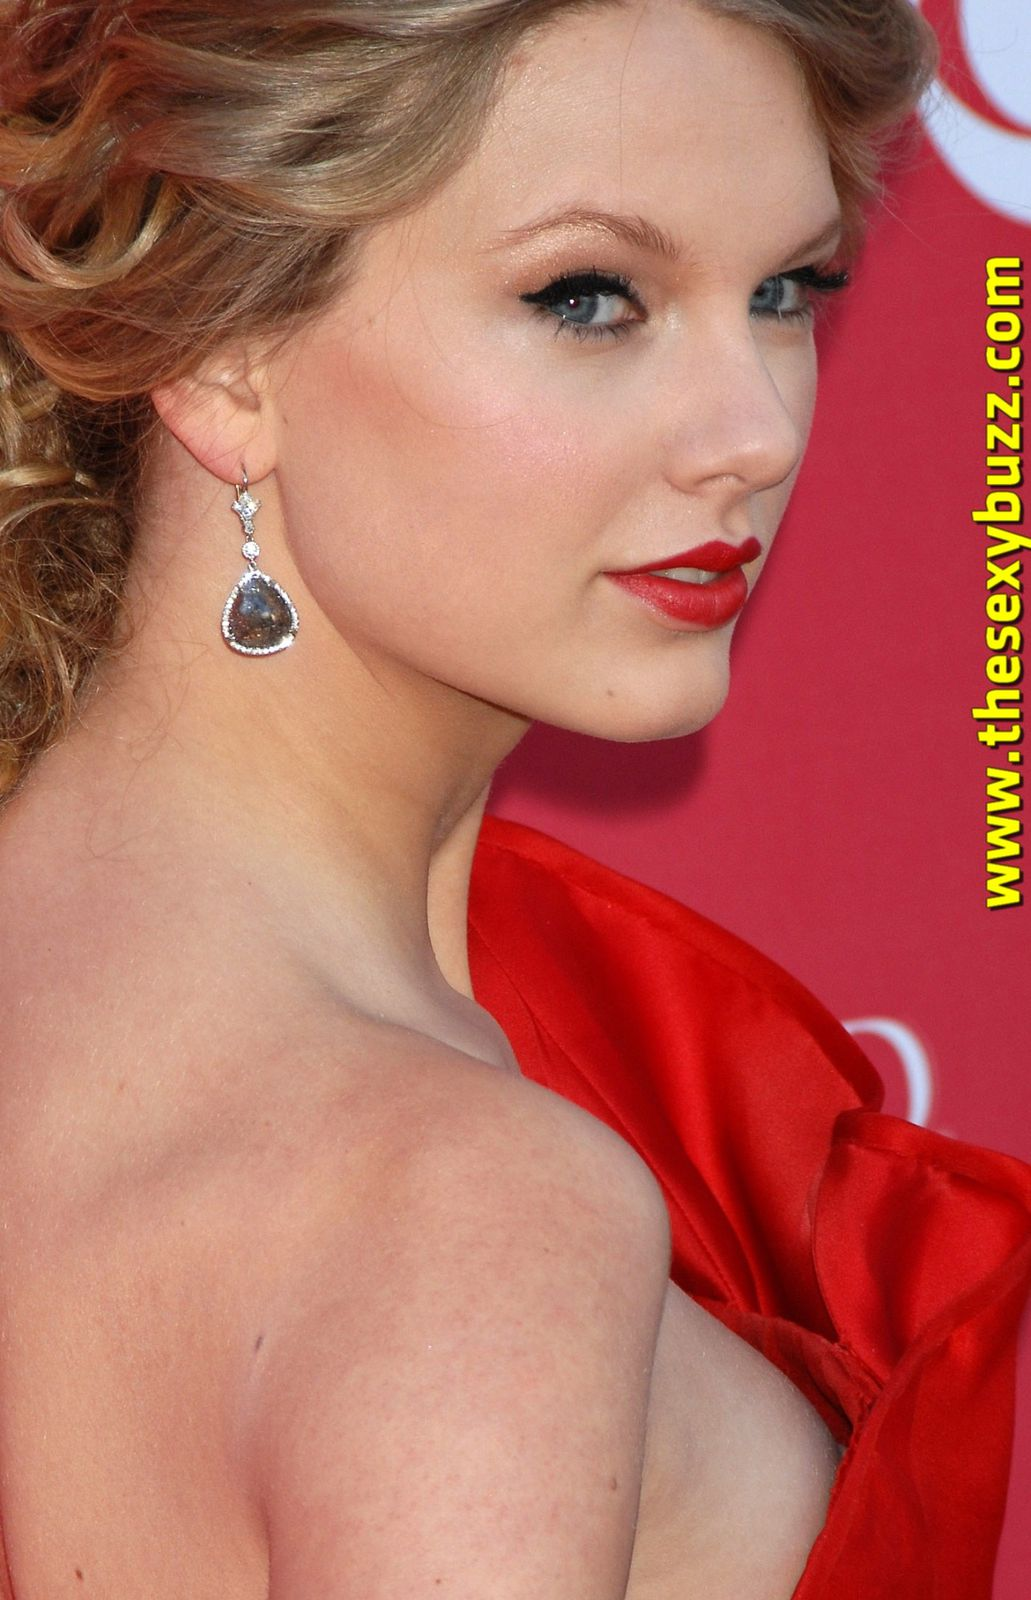 http://idata.over-blog.com/5/88/74/70/tsb17/6008669_5938036_taylor_swift.jpg